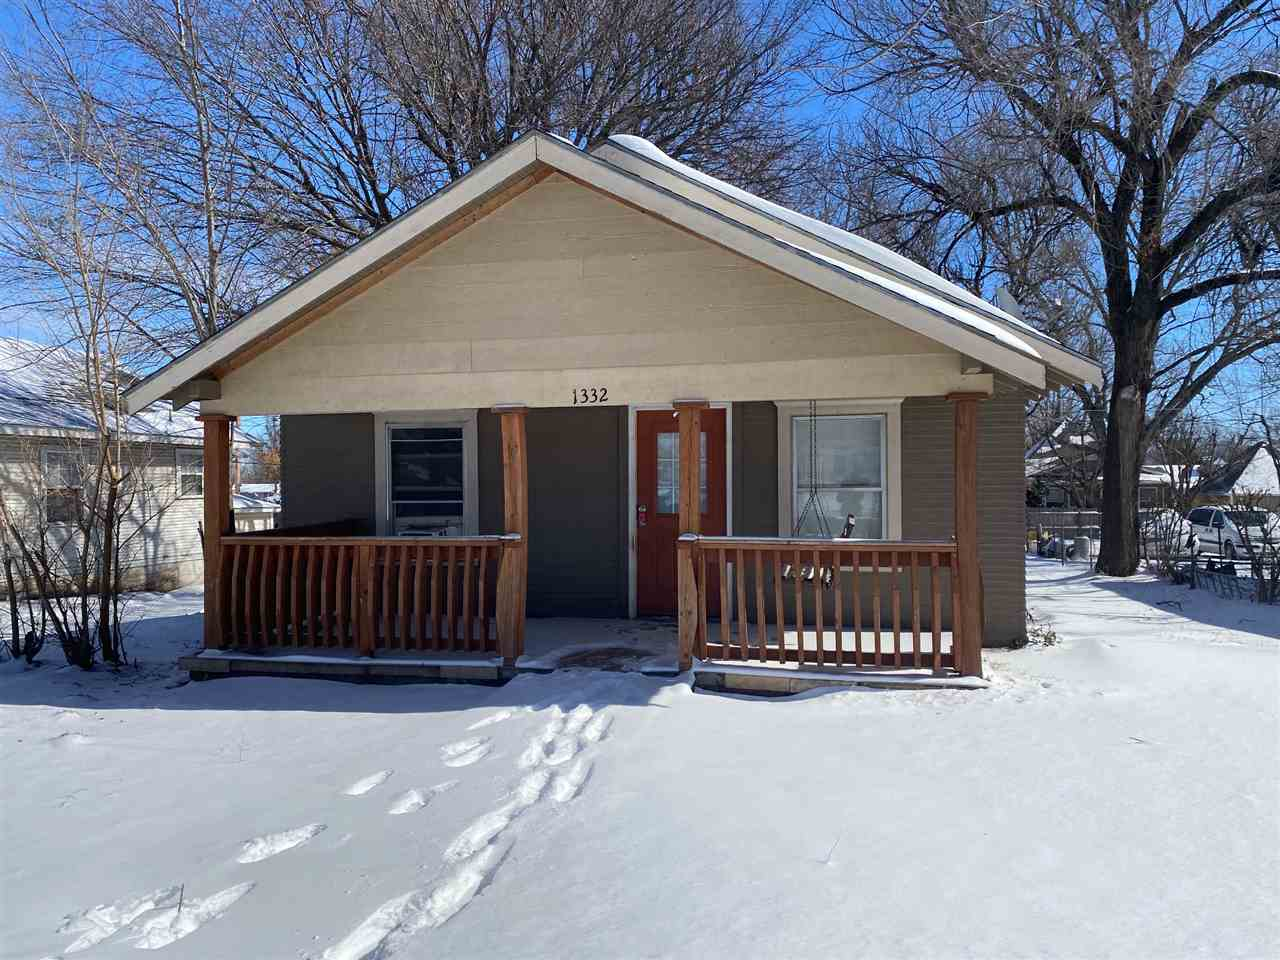 Attention Investors! This will make the perfect rental investment or starter home! Two spacious bedrooms, nice sized kitchen and mud/laundry room.  Nice layout and large backyard with great parking off alley. Call today to schedule a showing!